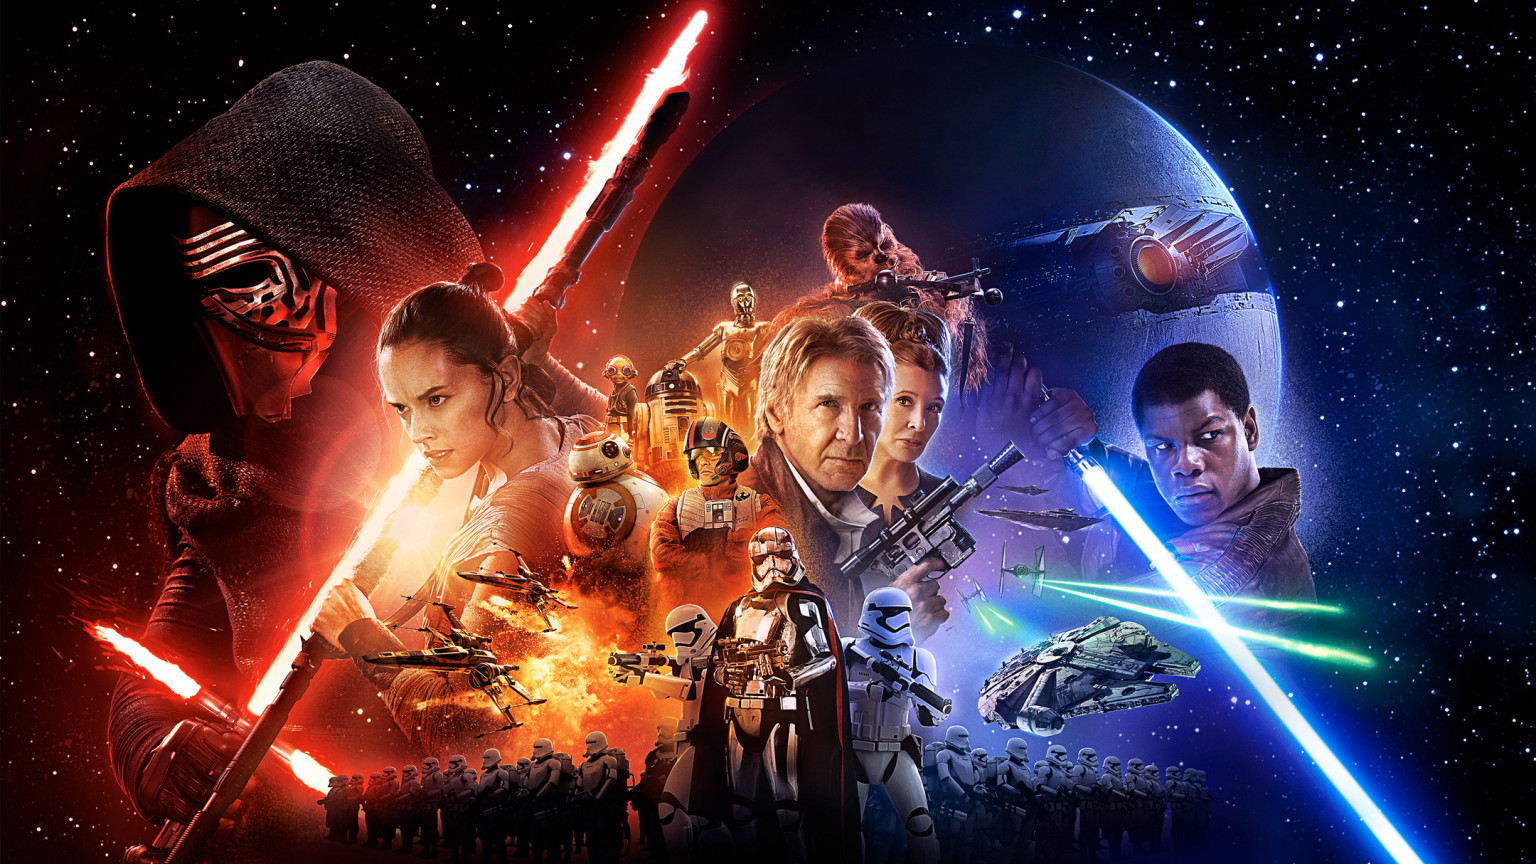 Recensie: Star Wars, the Force Awakens